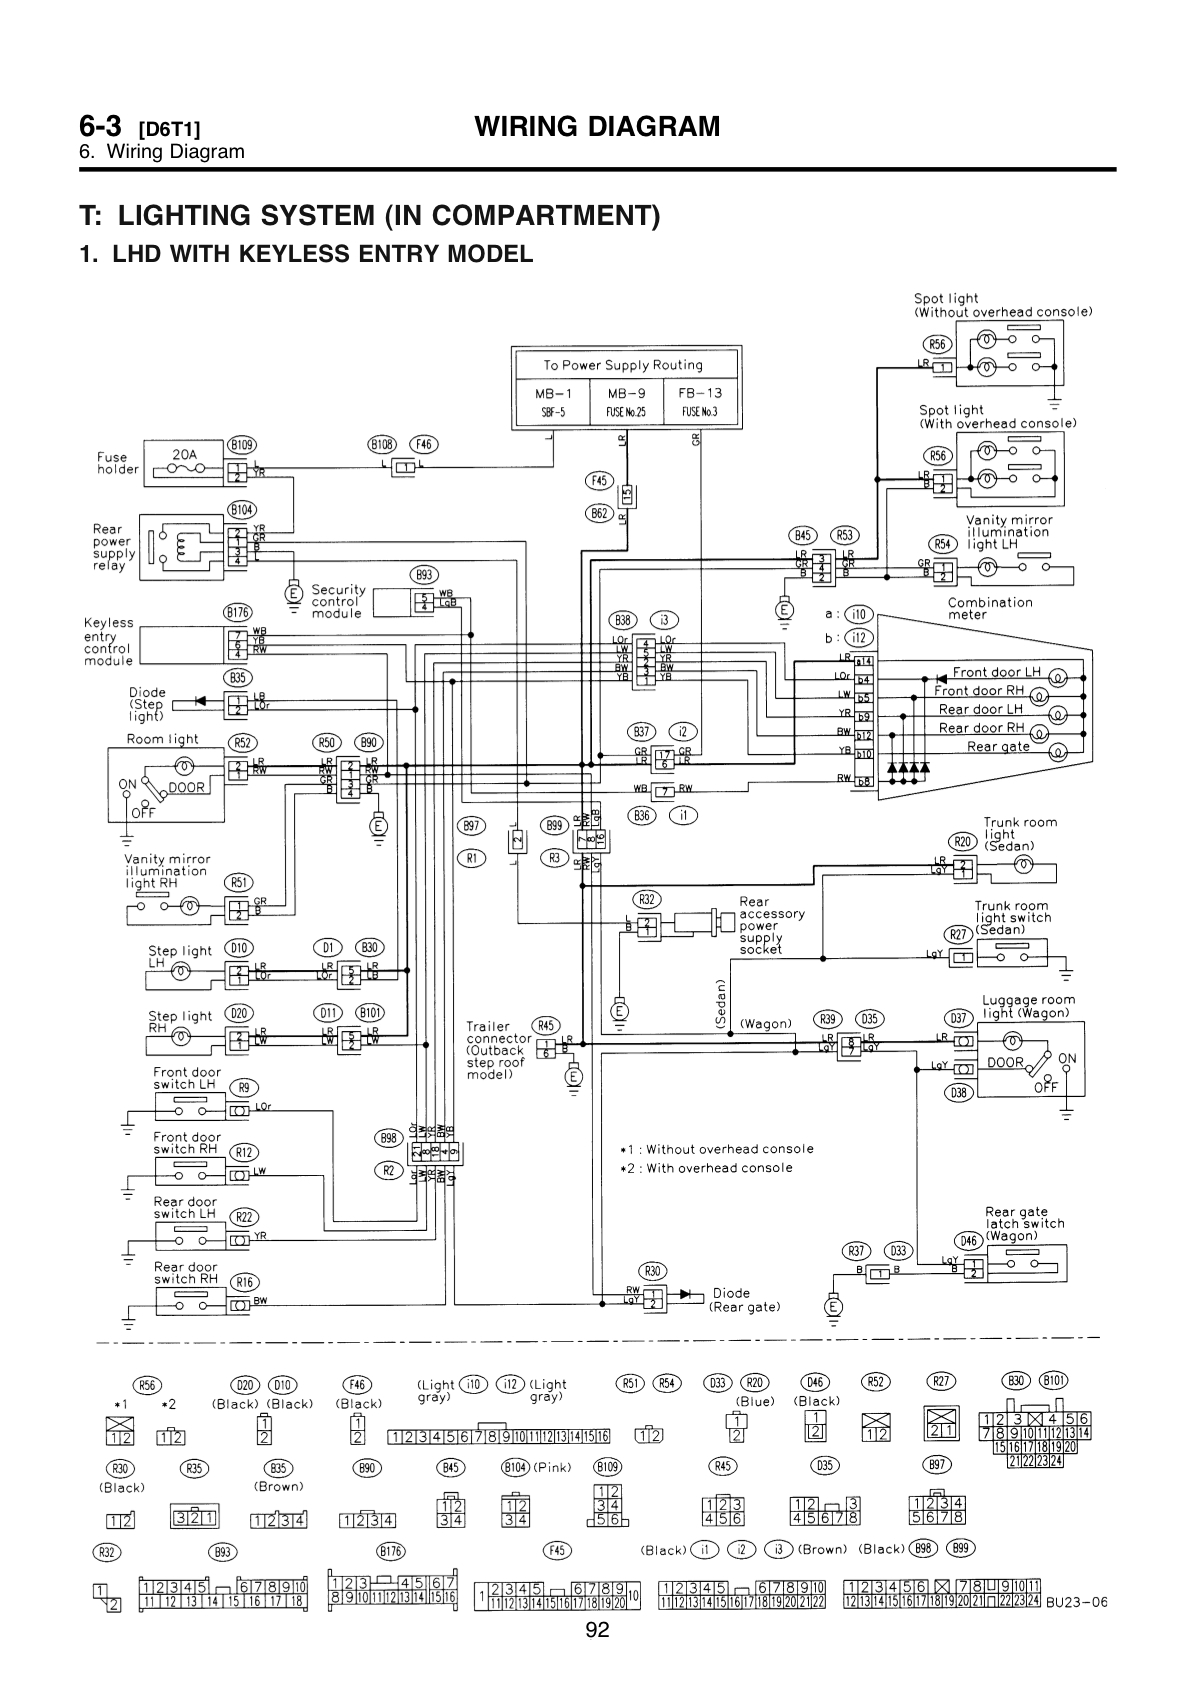 1997 subaru legacy wiring diagram Download-1997 Subaru Legacy Wiring Diagram Beautiful Wiring Schmatic 98 Perfect Subaru Stereo Wiring Diagram Ponent 7-b